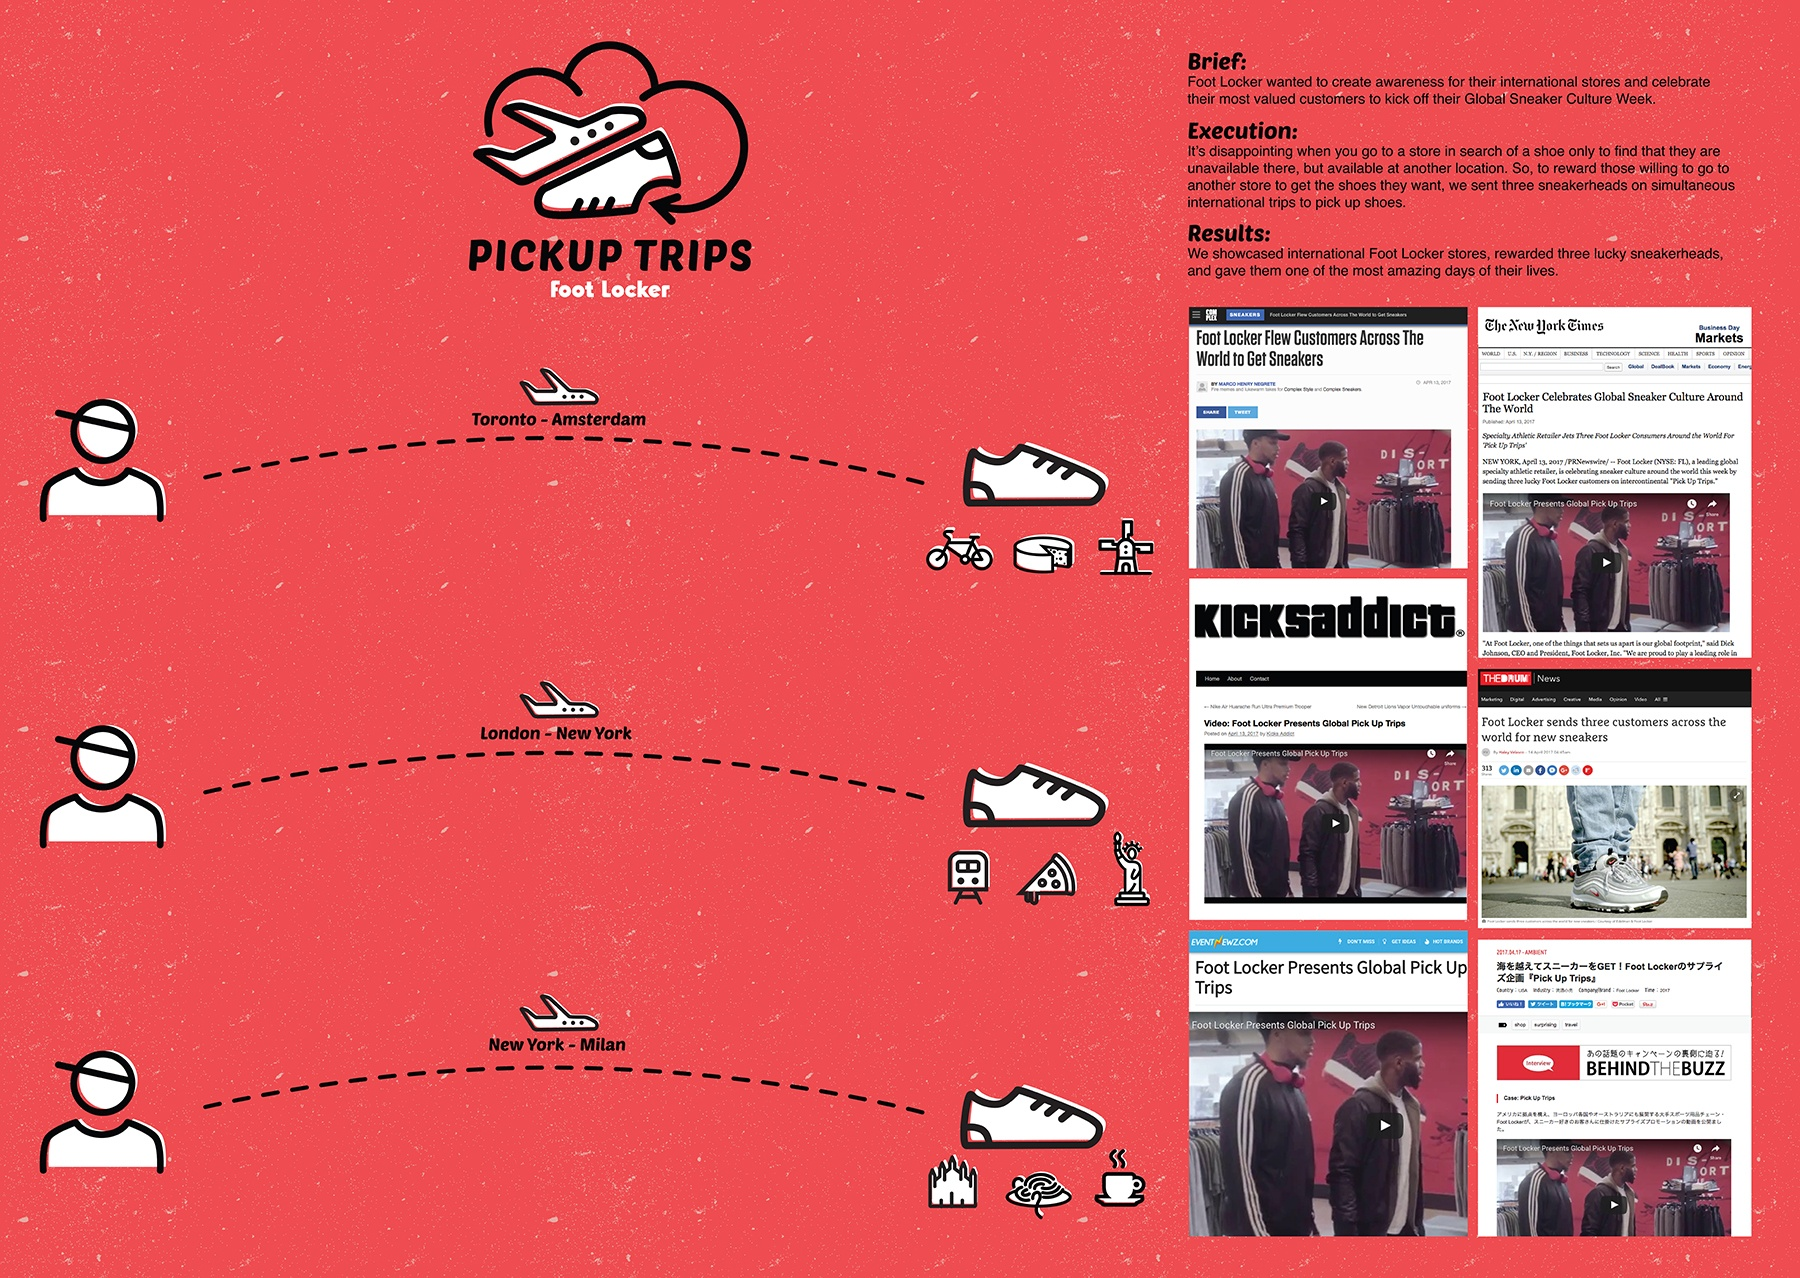 Thumbnail for Pickup Trips